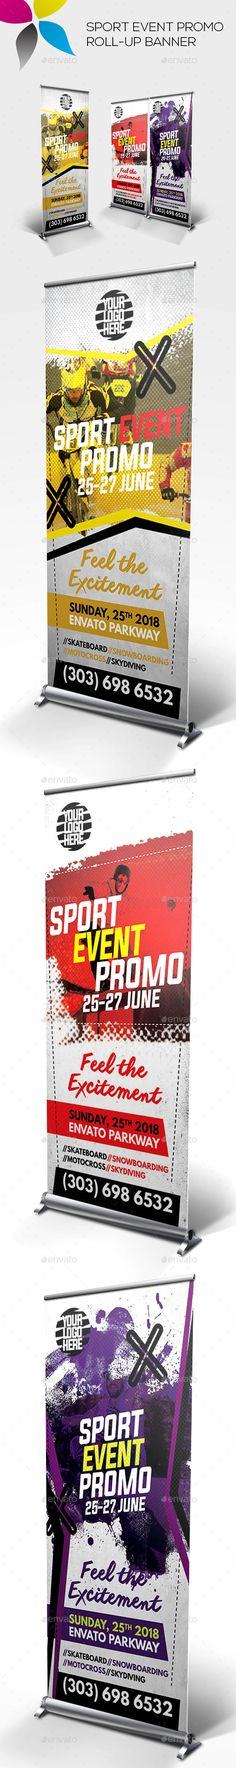 Sport Event Promo Roll-up Banner  Design Template - Signage Ads Banner Print Design Template PSD. Download here: https://graphicriver.net/item/sport-event-promo-rollup-banner/19319251?ref=yinkira